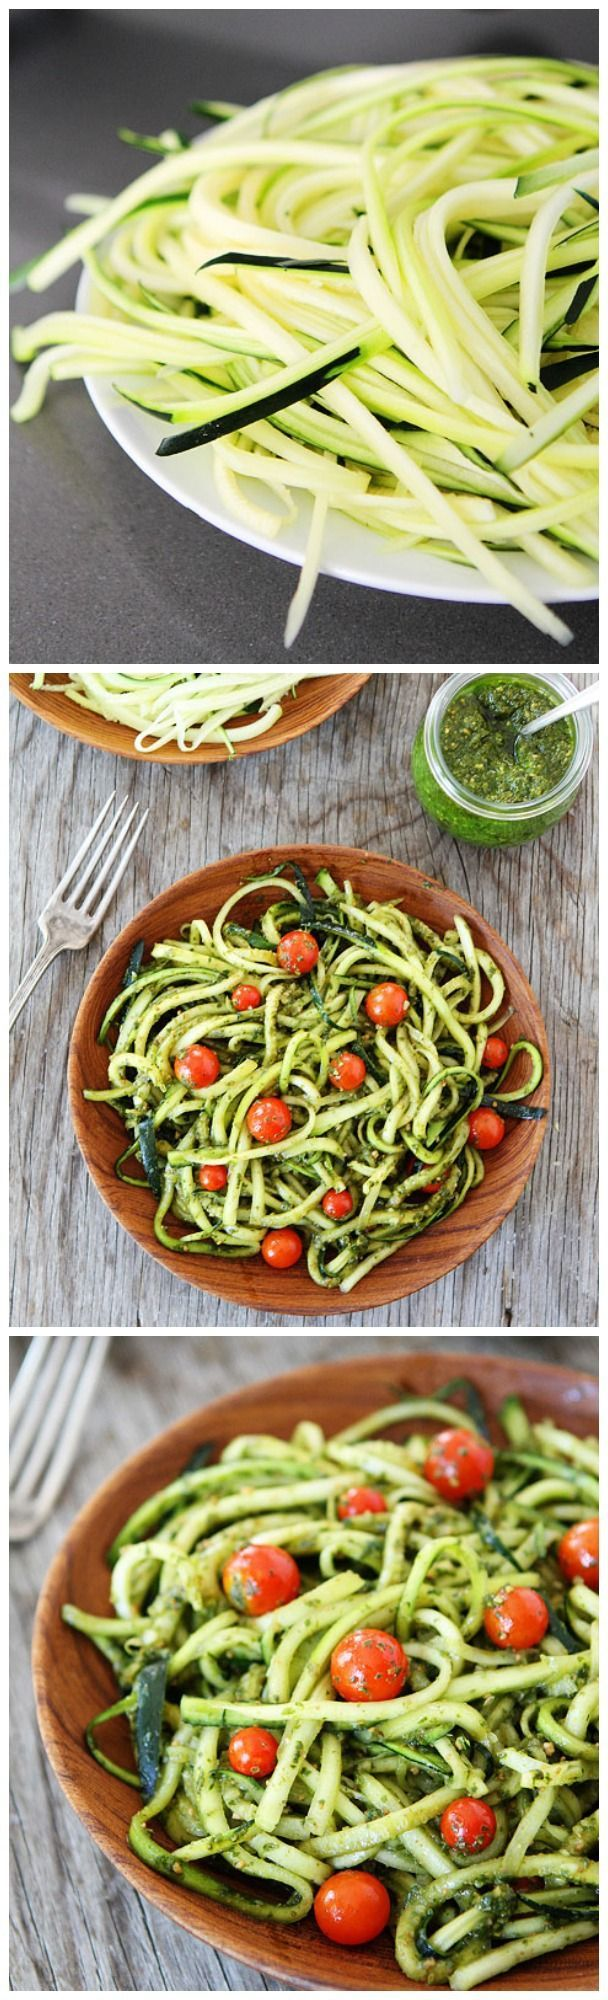 Easy Zucchini Noodles with Pesto ~ A fun twist on pasta! Love this healthy meal!